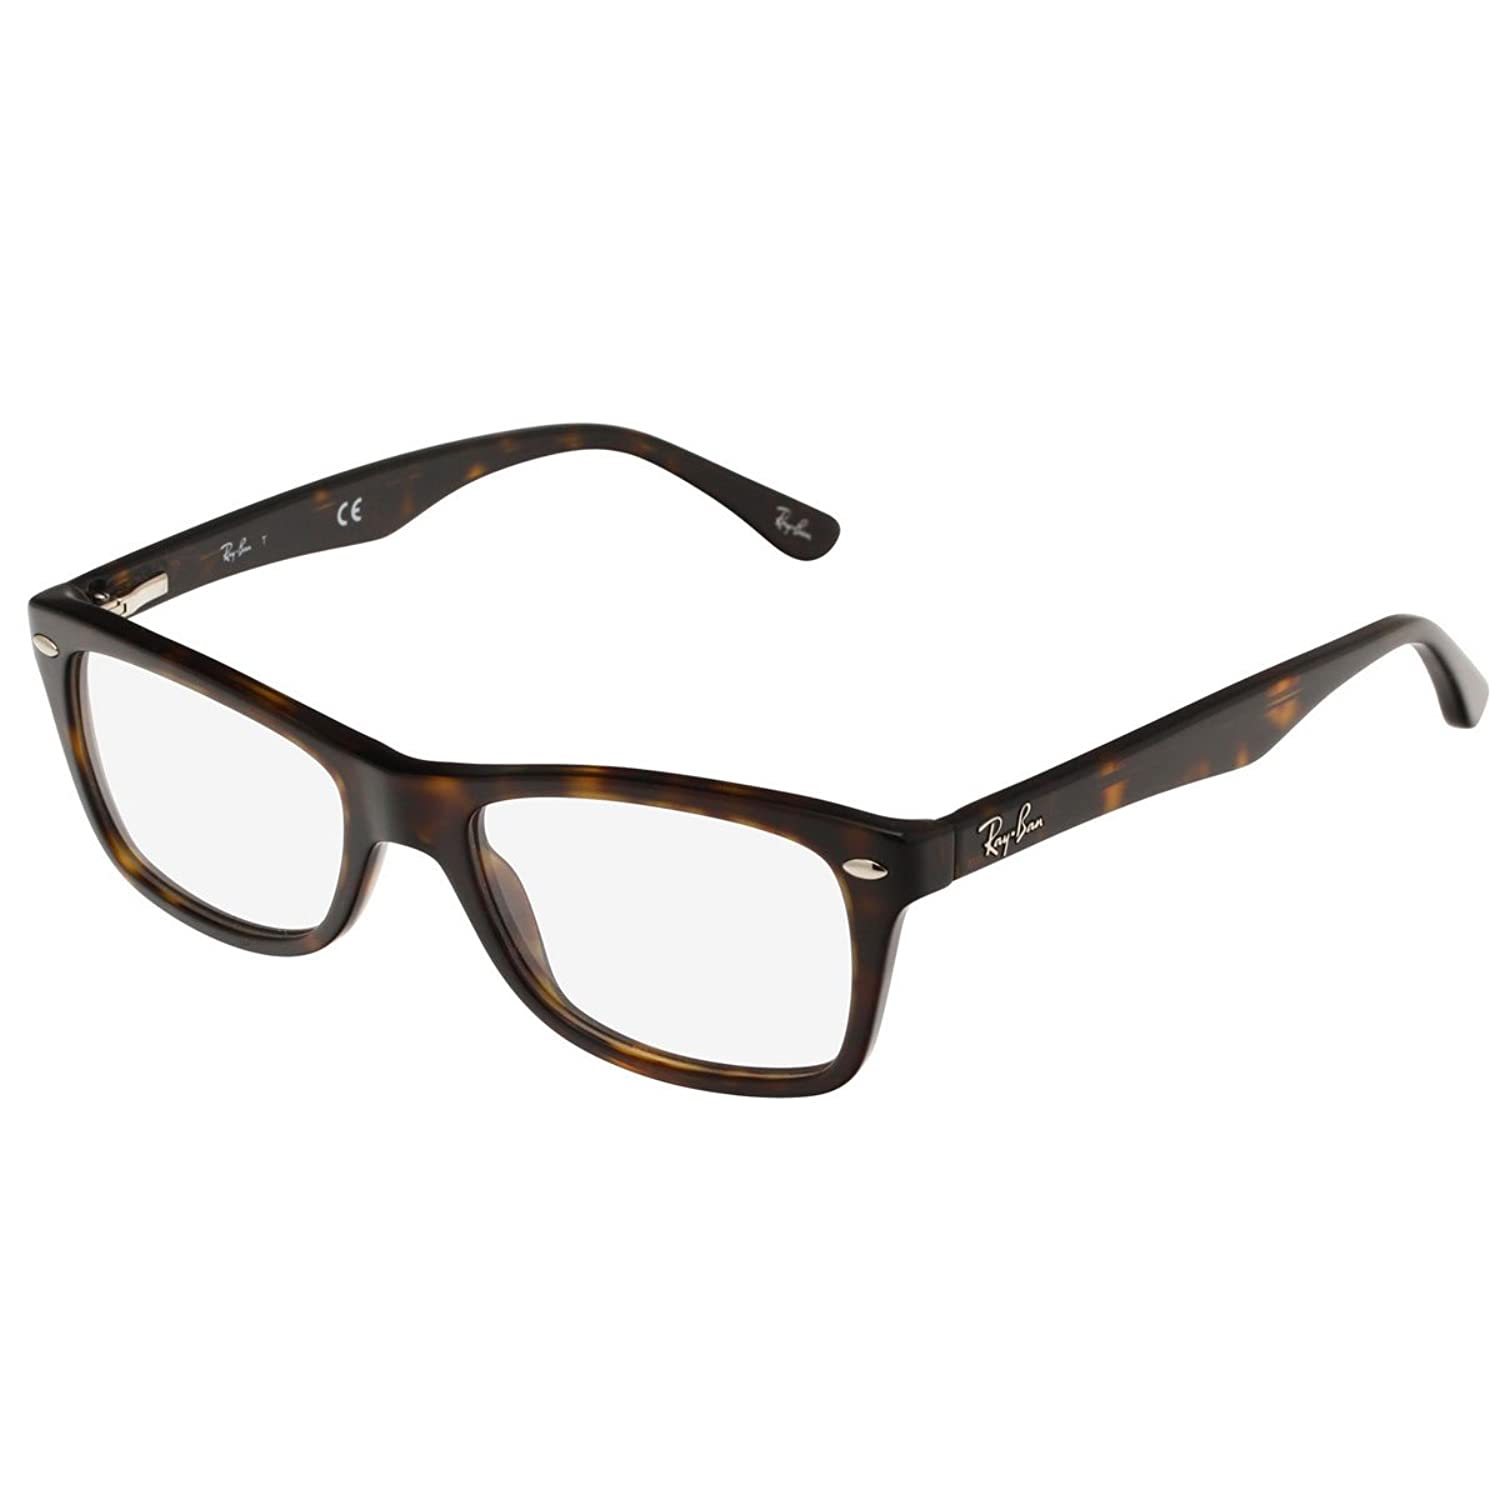 amazoncom ray ban rx5228 eyeglasses clothing